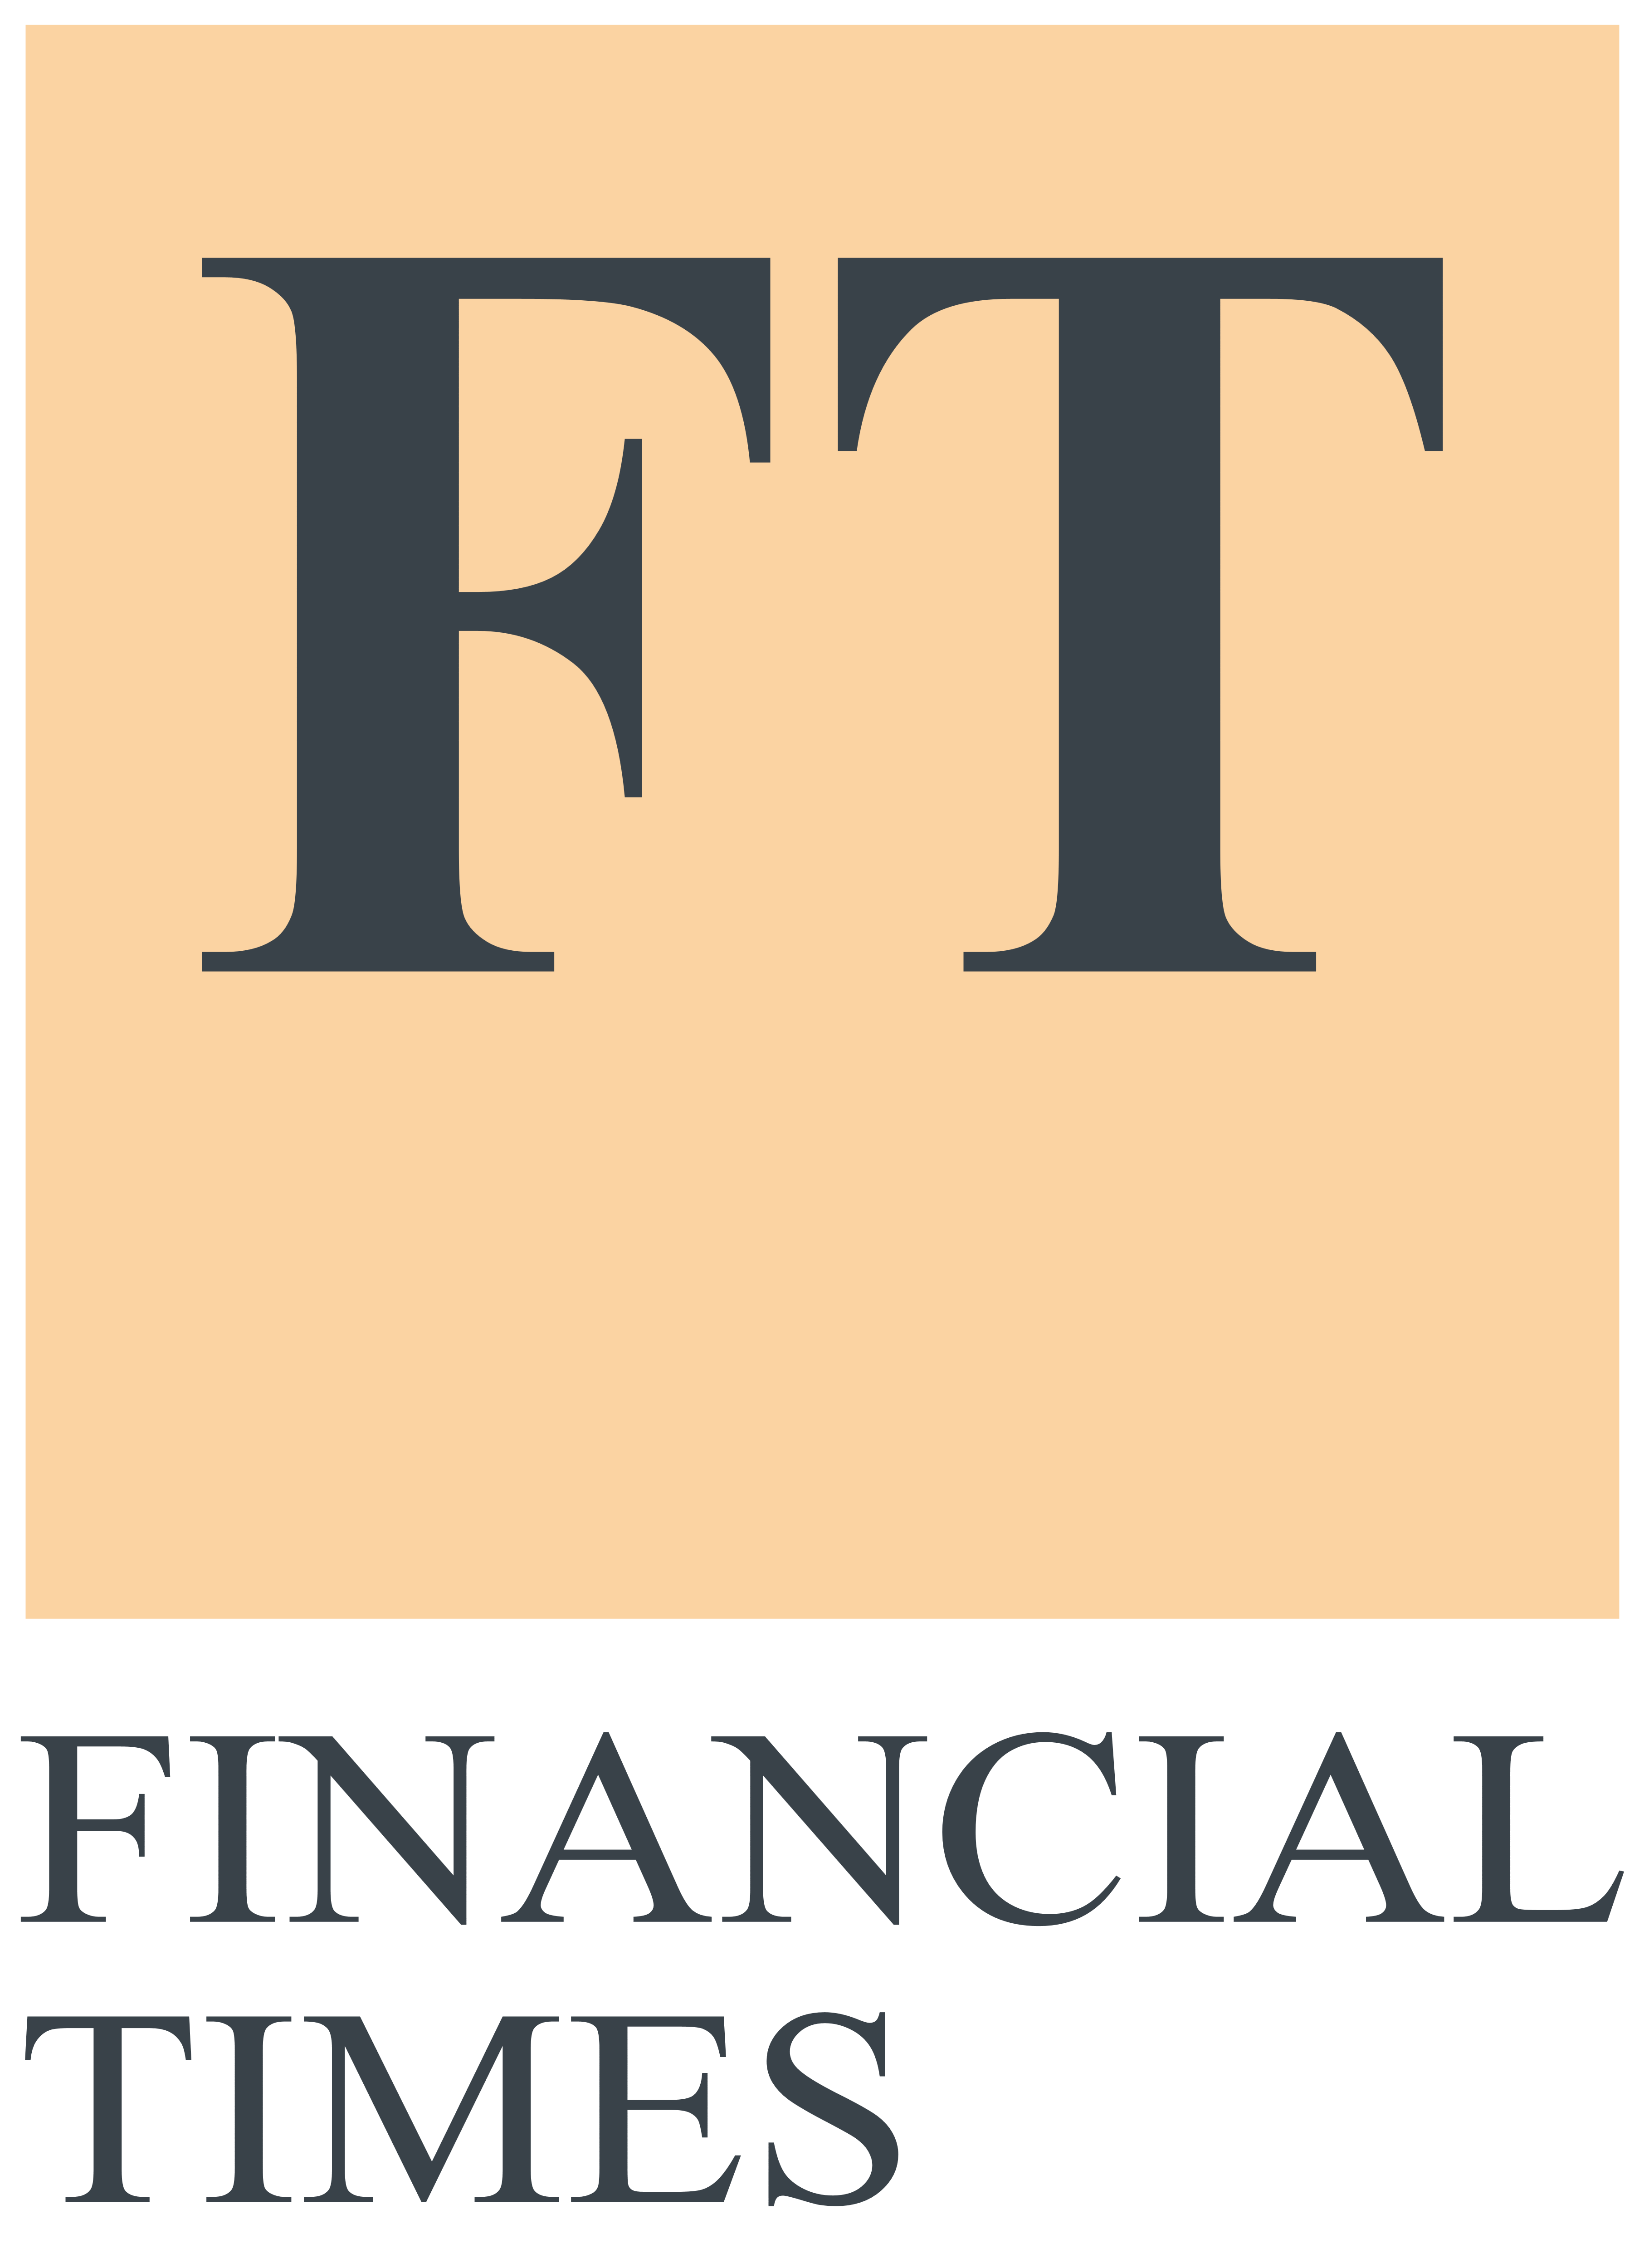 Ft The Financial Times Logos Download